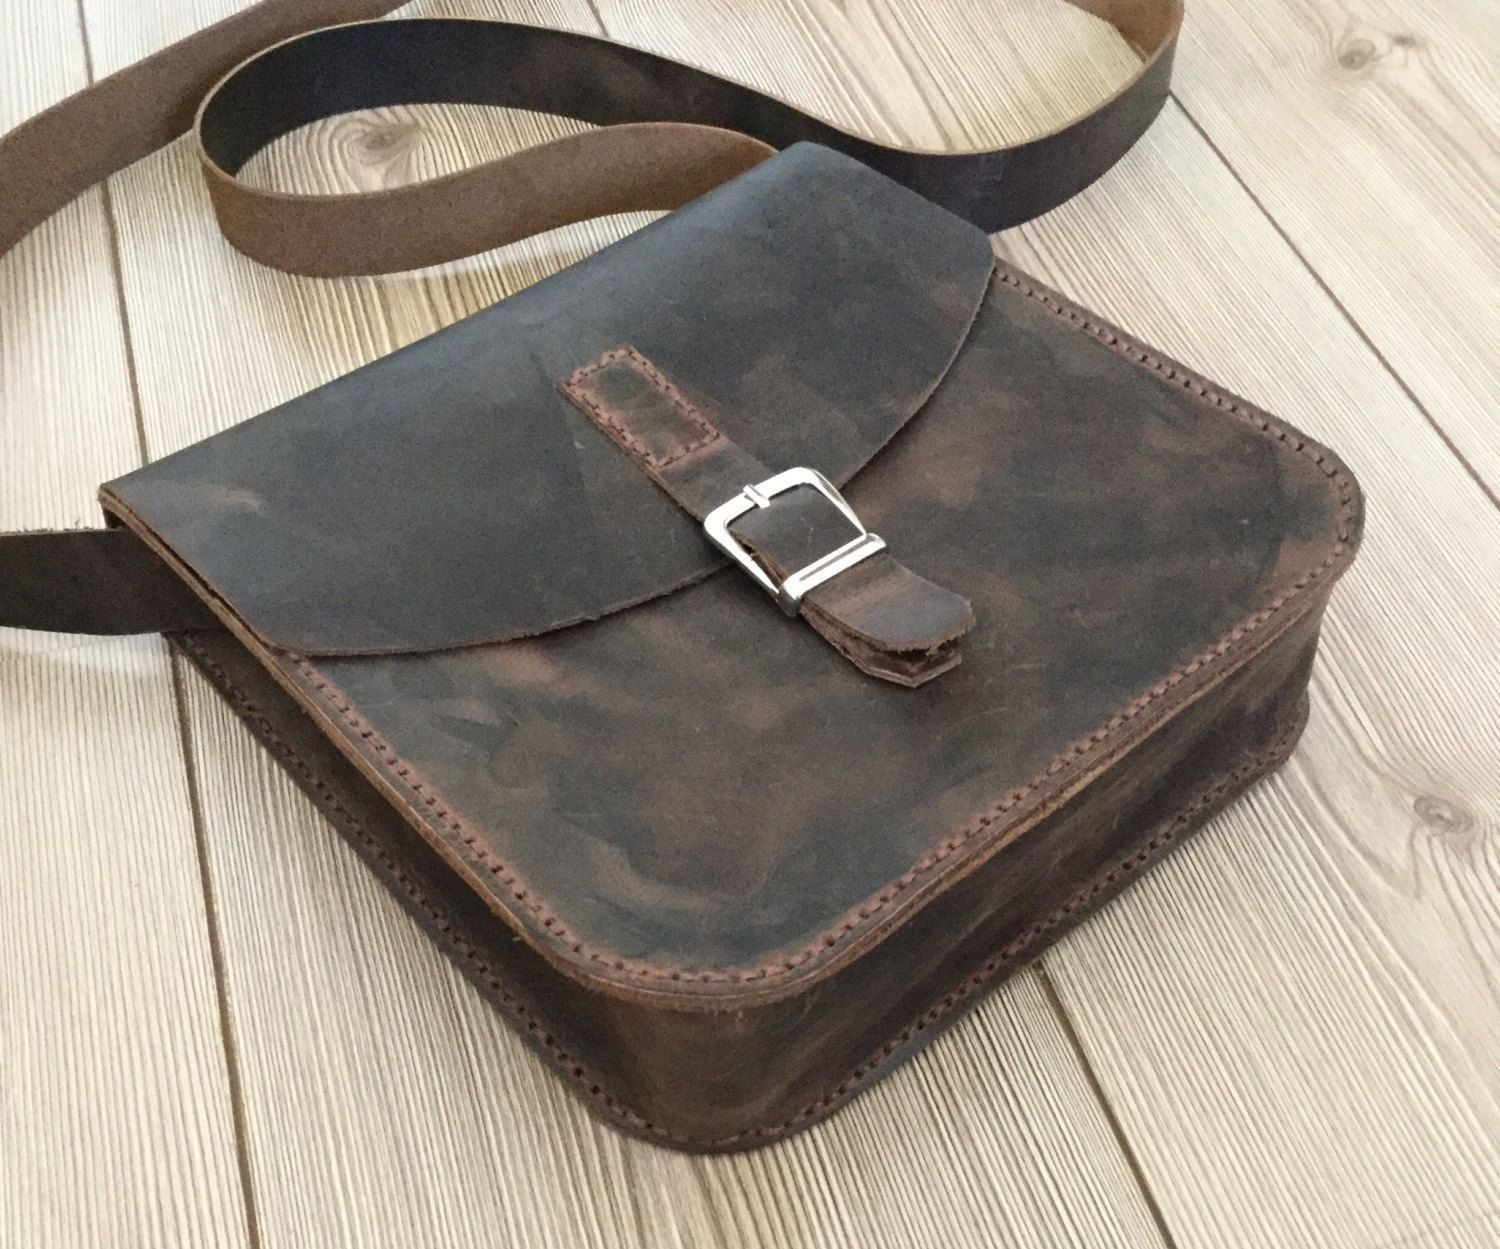 4ed4b443b1e Leather Bag Leather cross Bag Men s Leather bag Valentine s gift Leather  saddle bag (139.00 USD